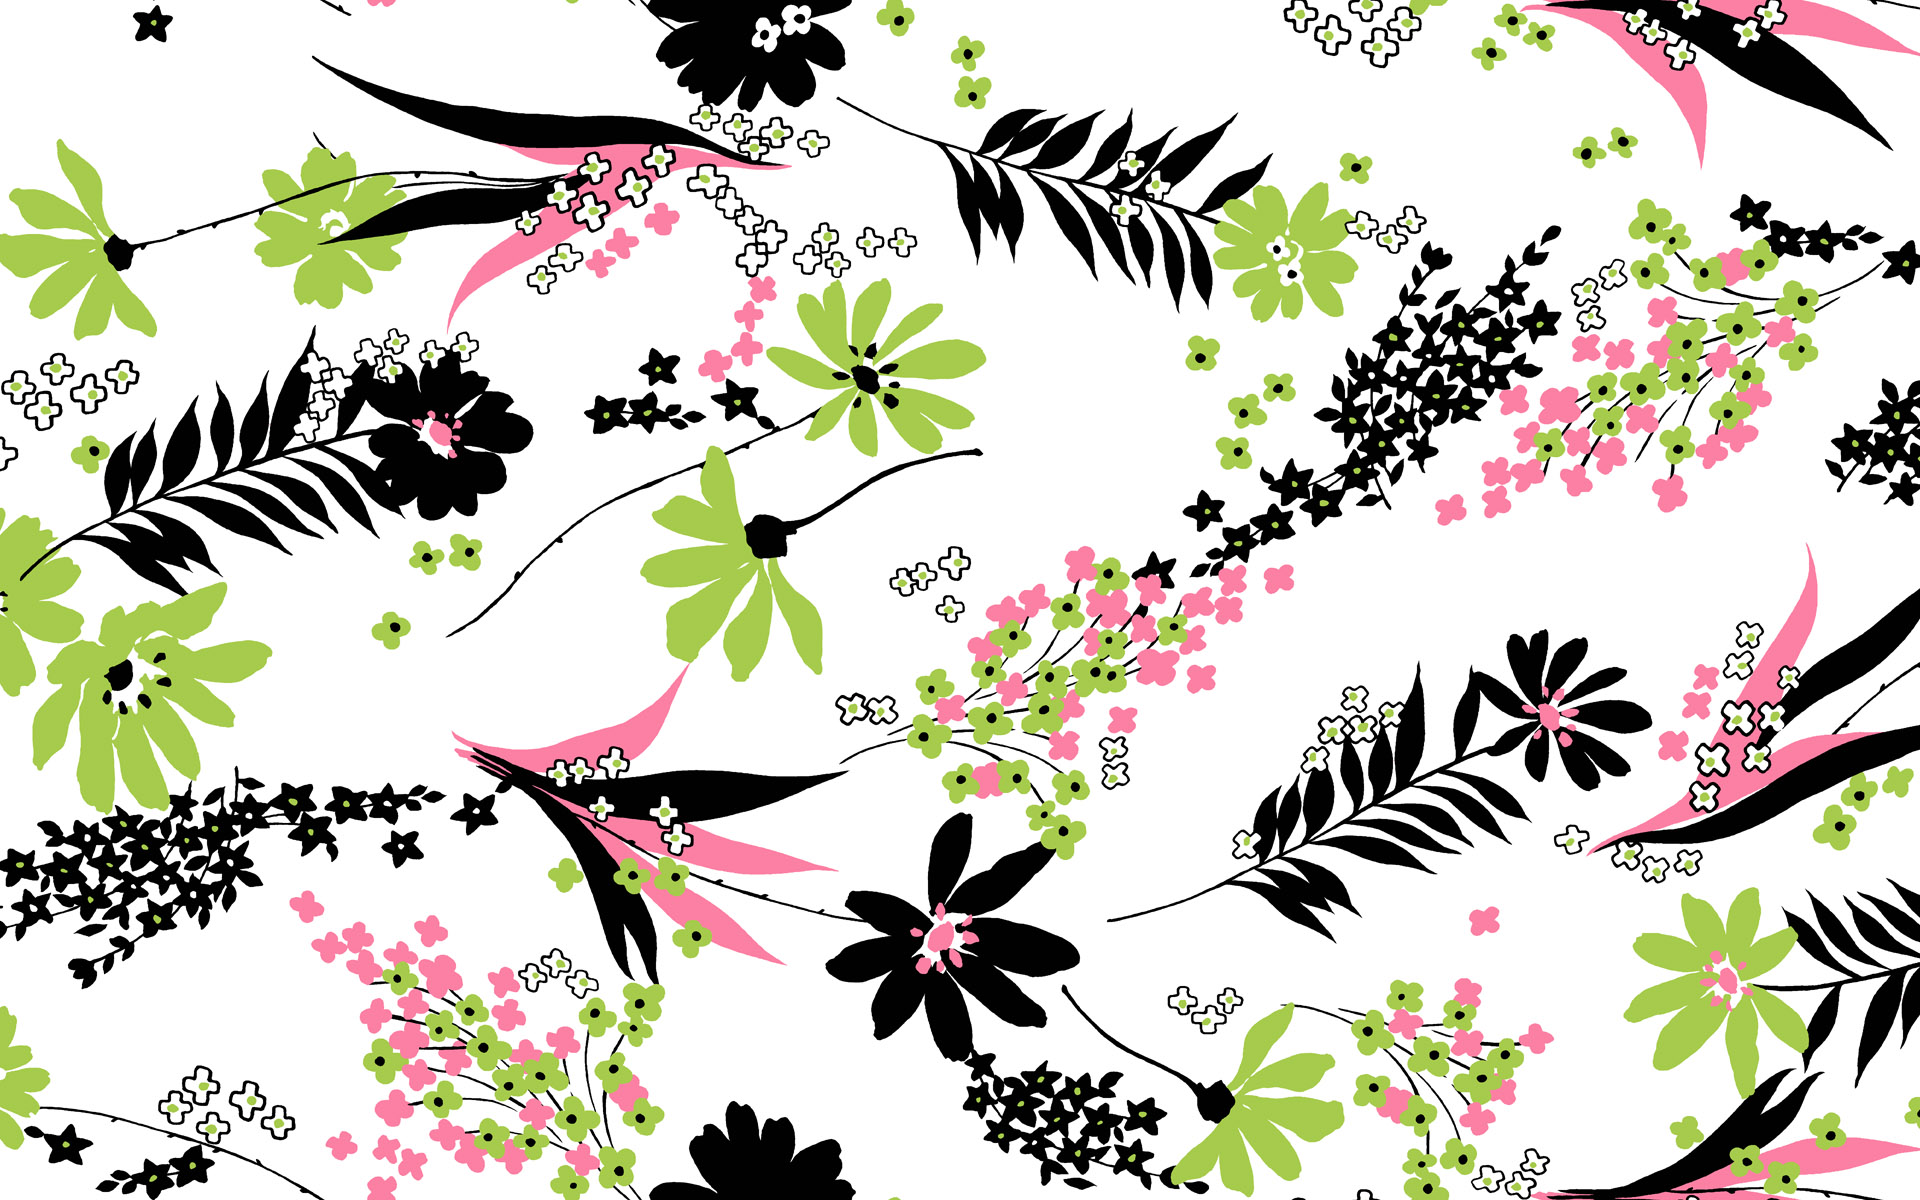 Background wallpaper pattern pattern 4737